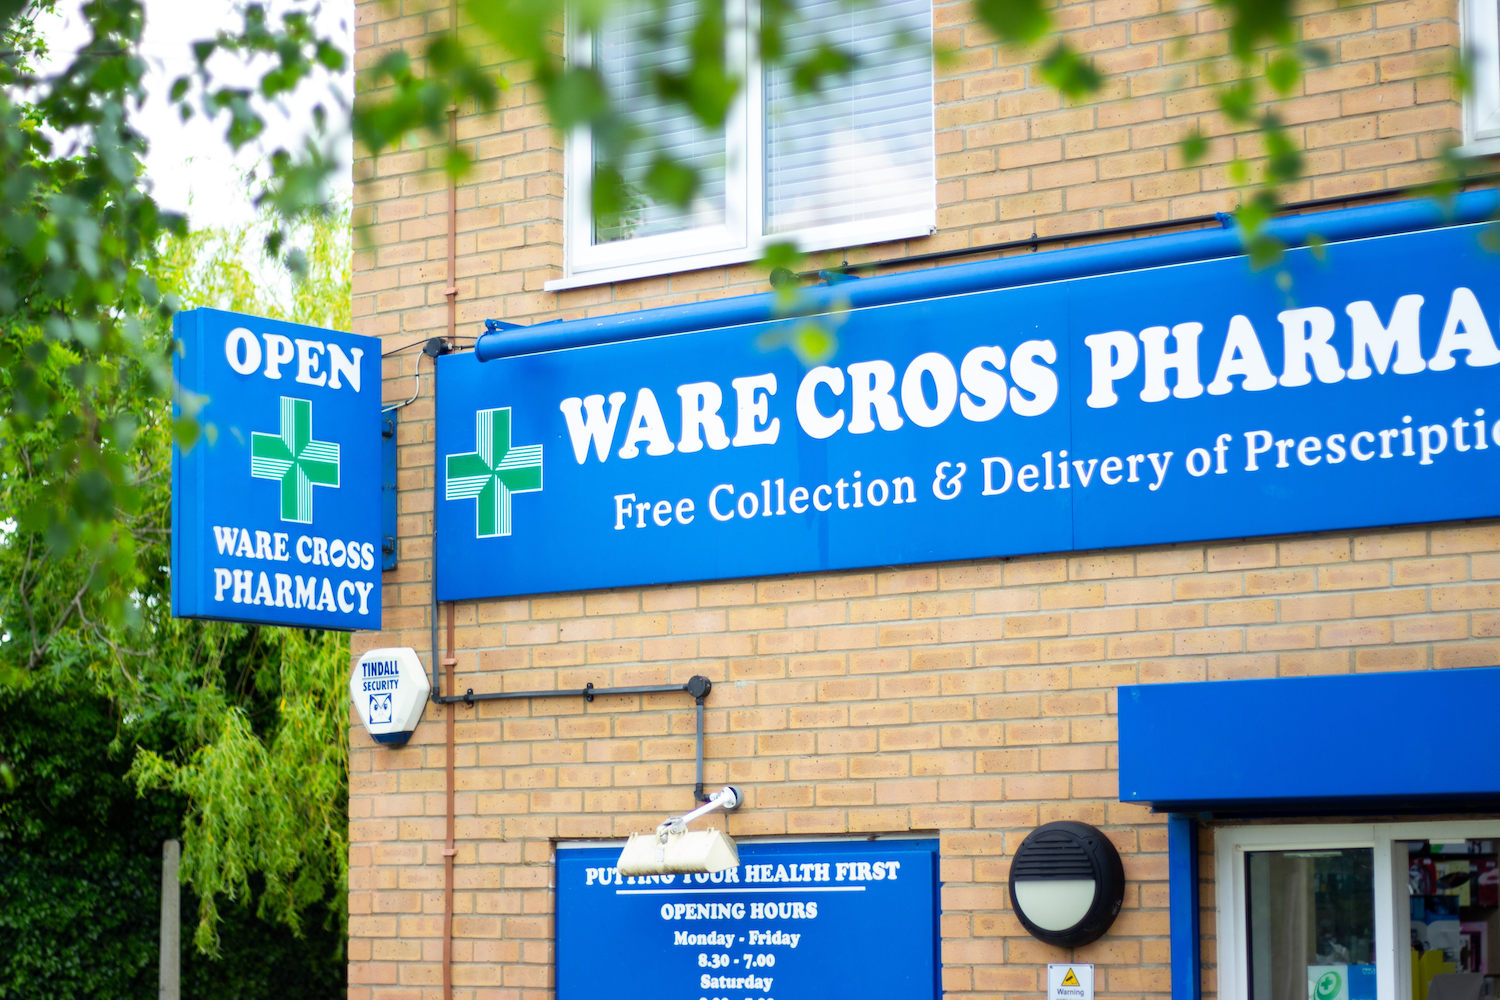 ware cross pharmacy